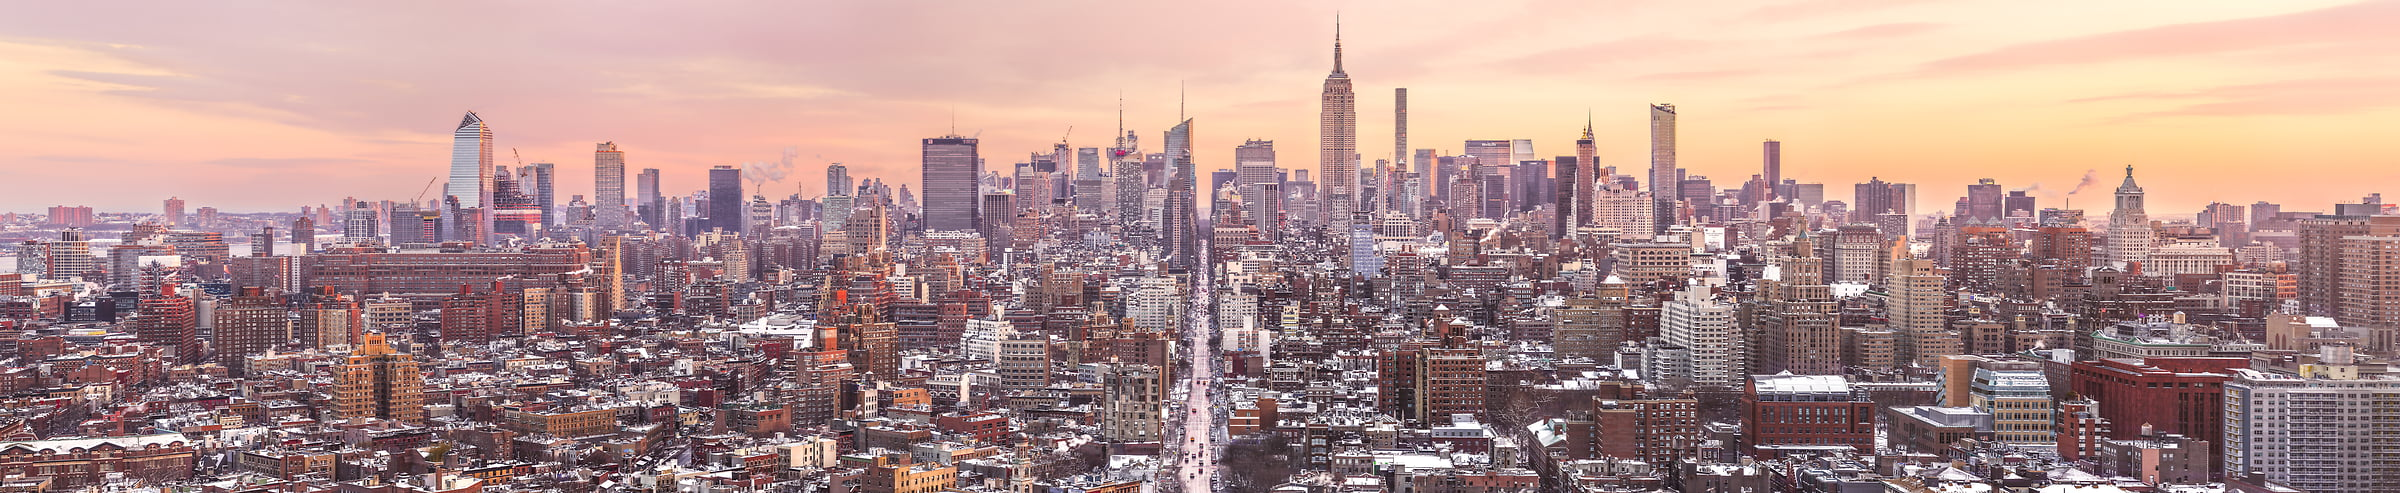 1,150 megapixels! A very high resolution, large-format VAST photo print of the NYC skyline in winter snow; cityscape sunrise fine art photo created by Dan Piech in New York City